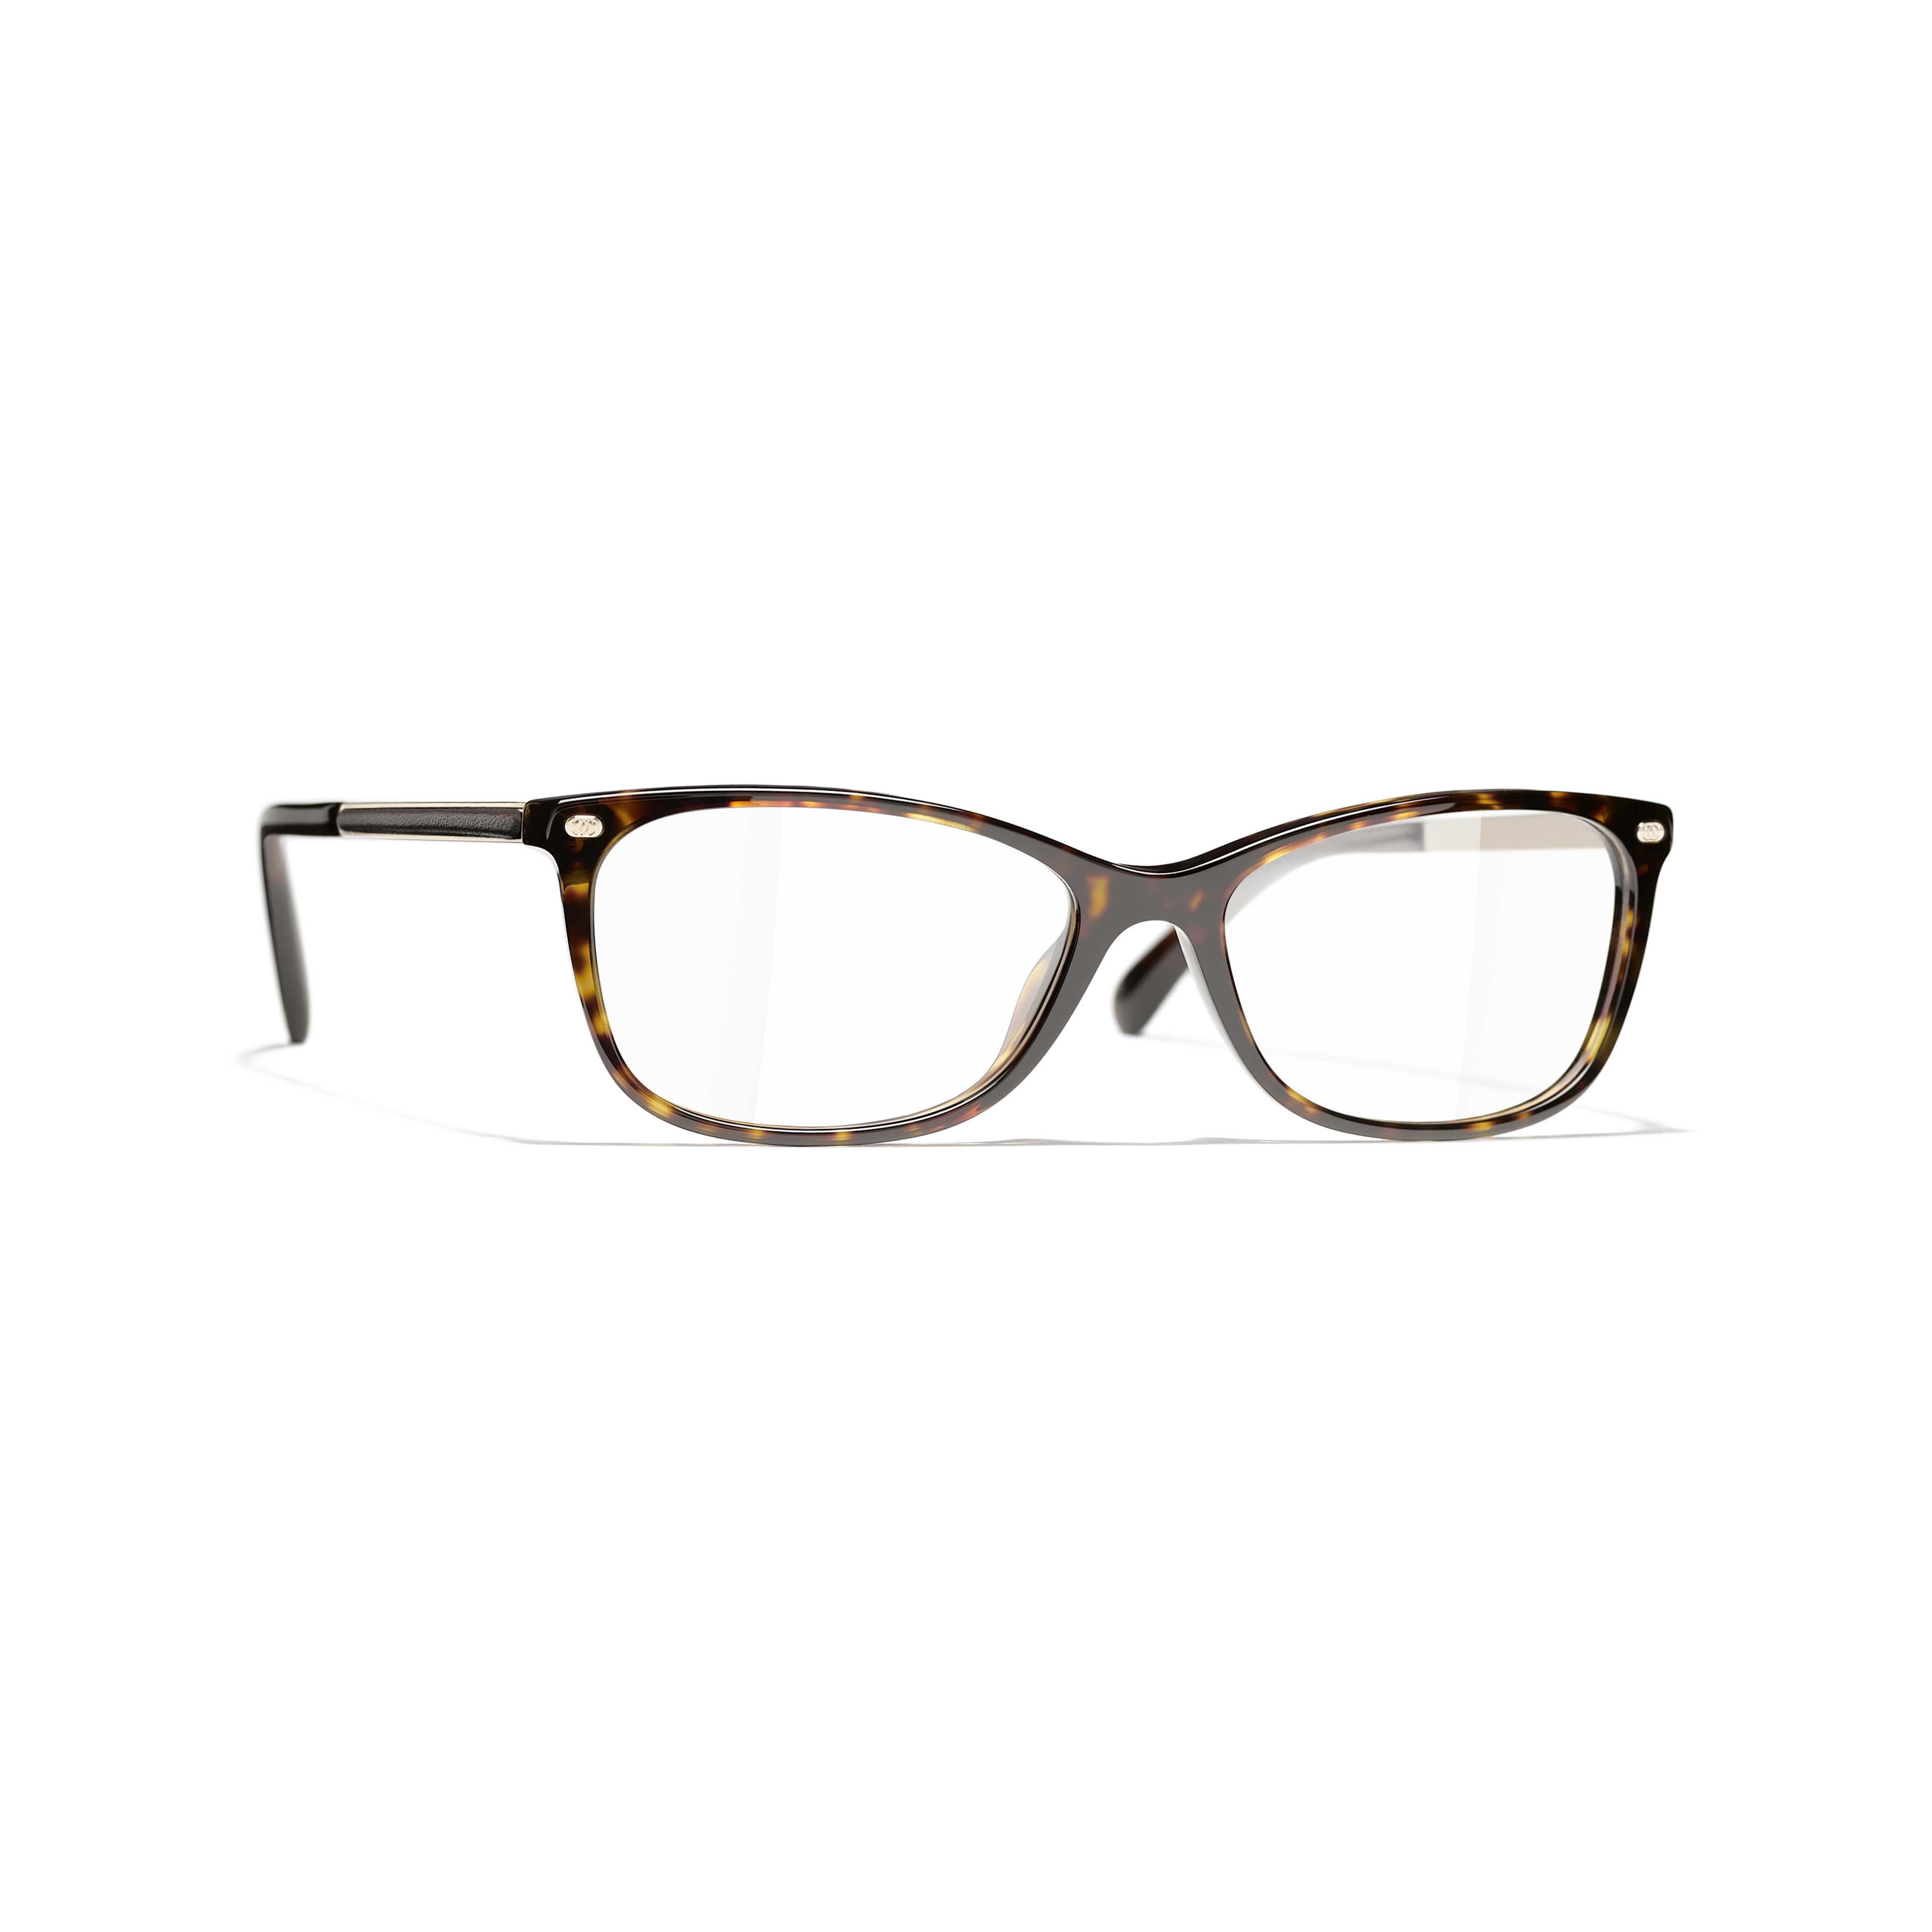 Rectangle Eyeglasses - Dark Tortoise - Acetate & Lambskin - CHANEL - Default view - see standard sized version